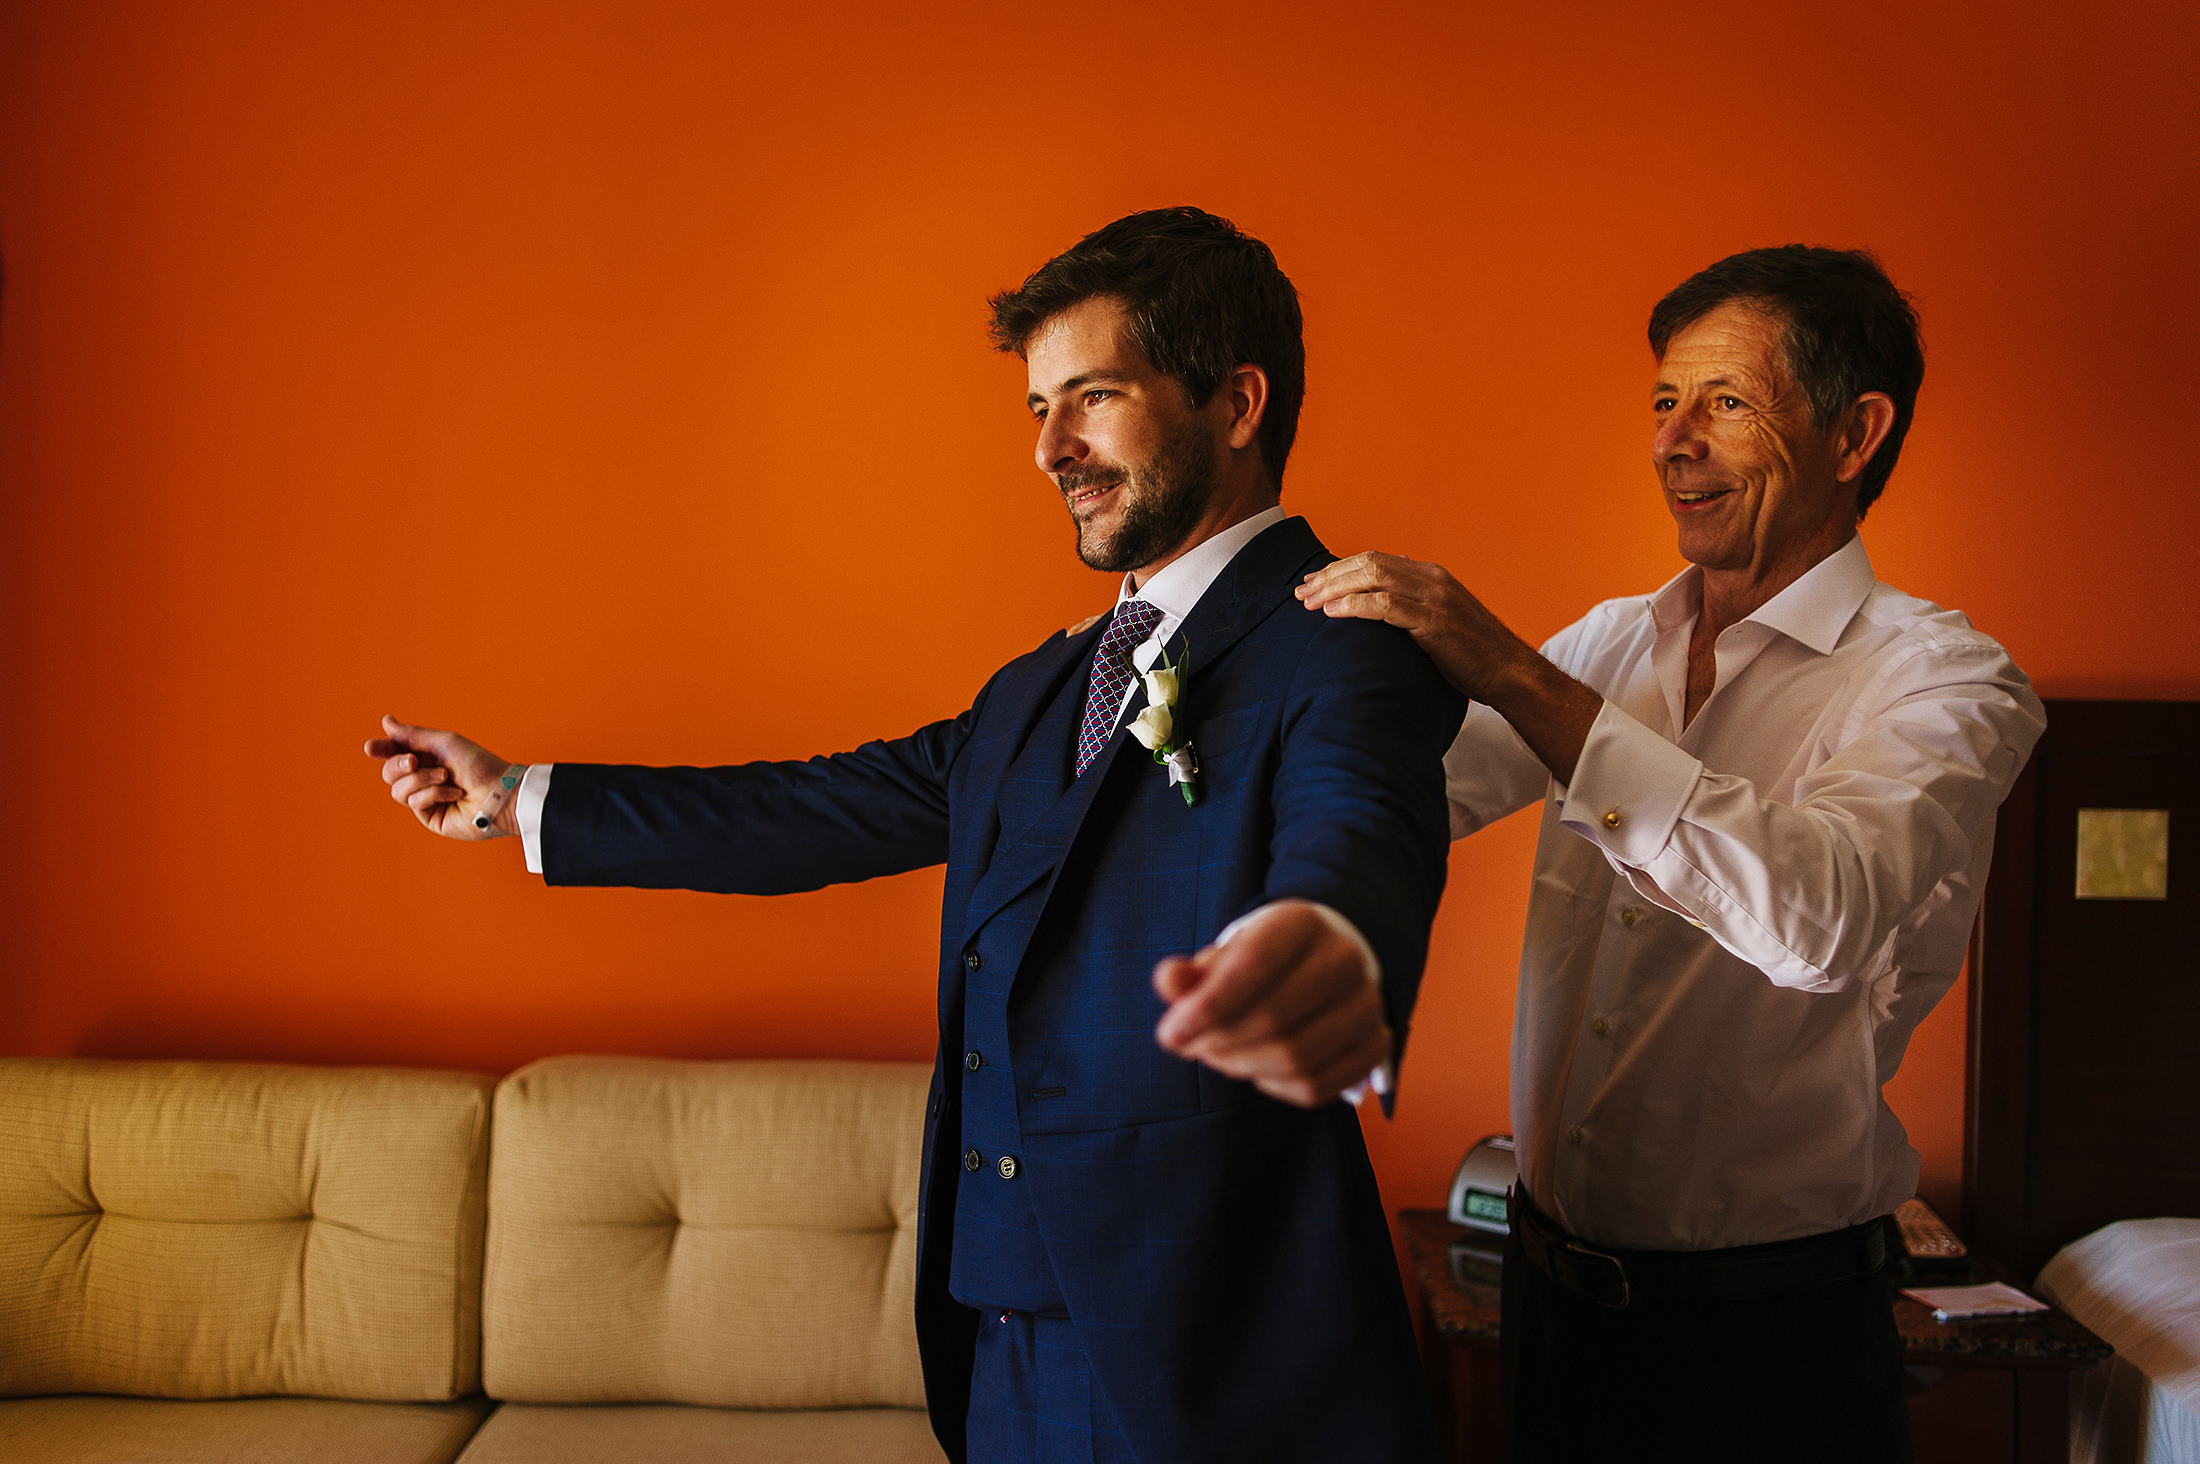 Groom being helped by his Dad to put his jacket on